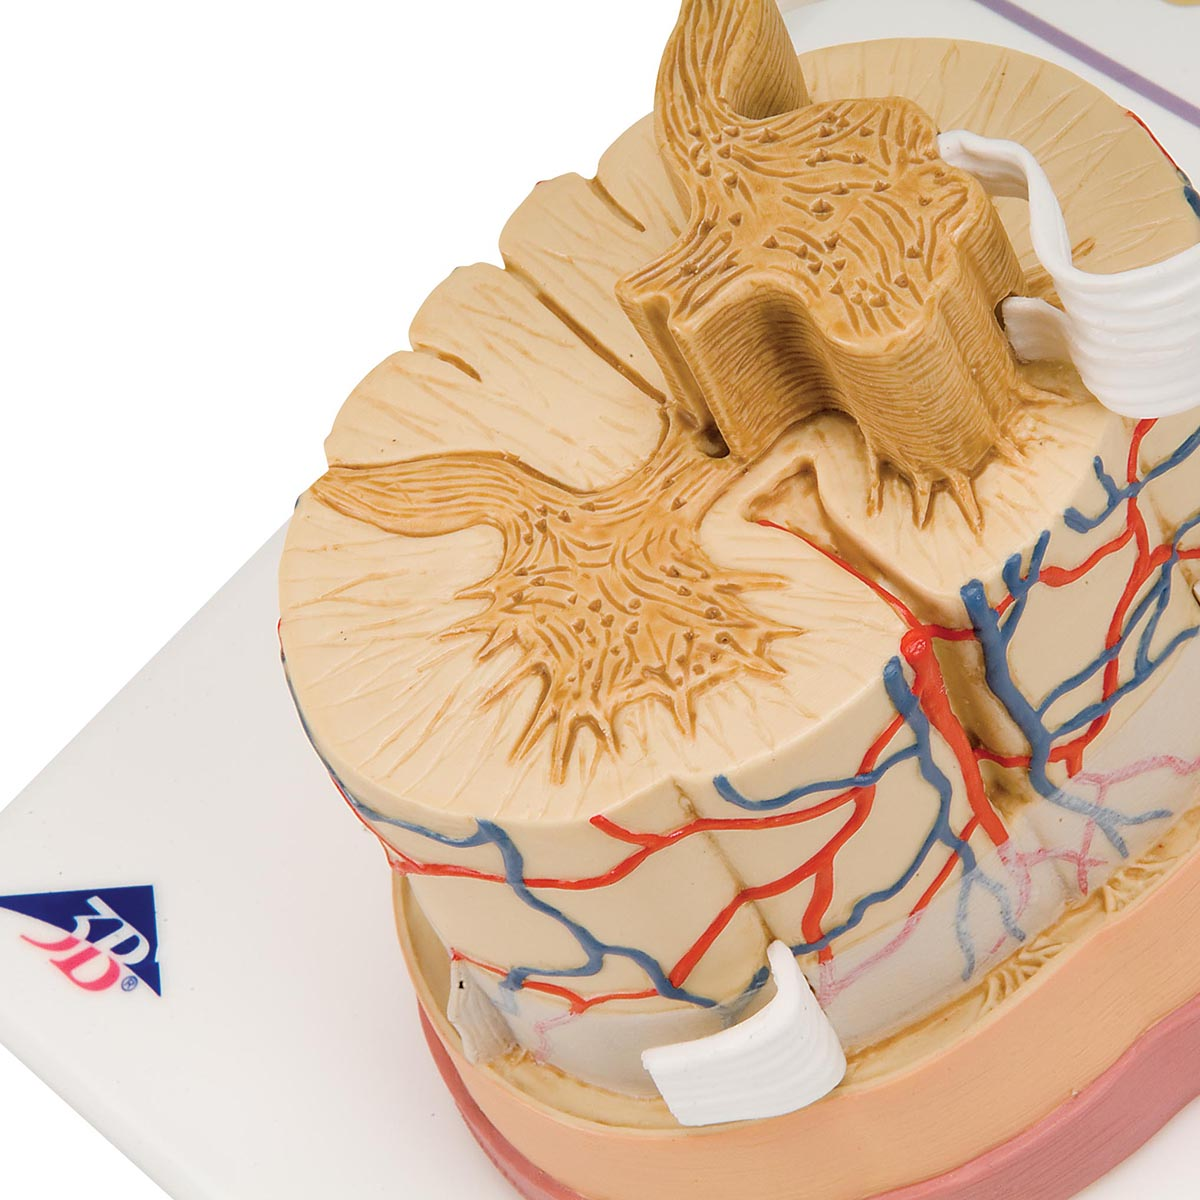 Spinal Cord Anatomical Model Spinal Cord Model 5 Times Life